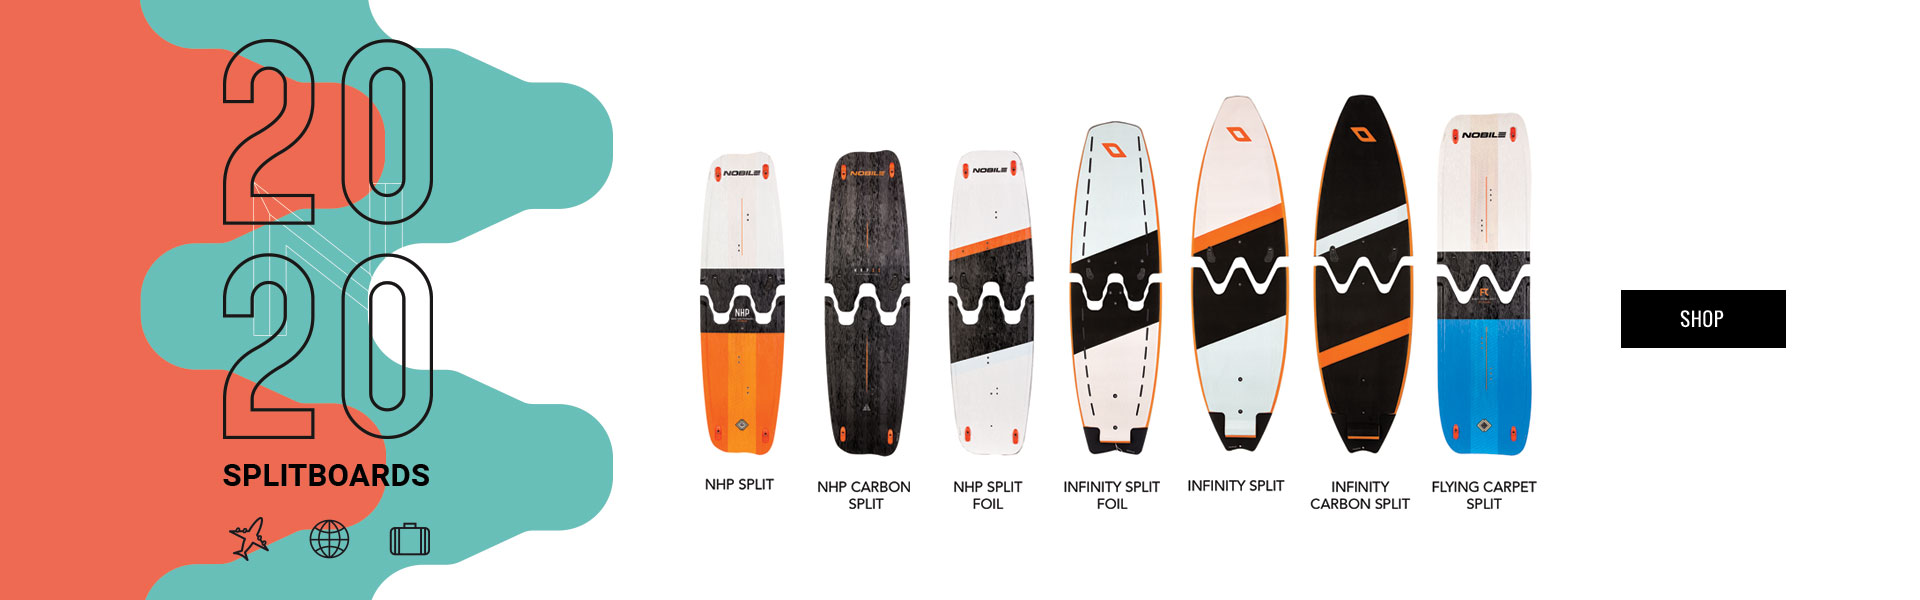 Kiteboard 2020 - split